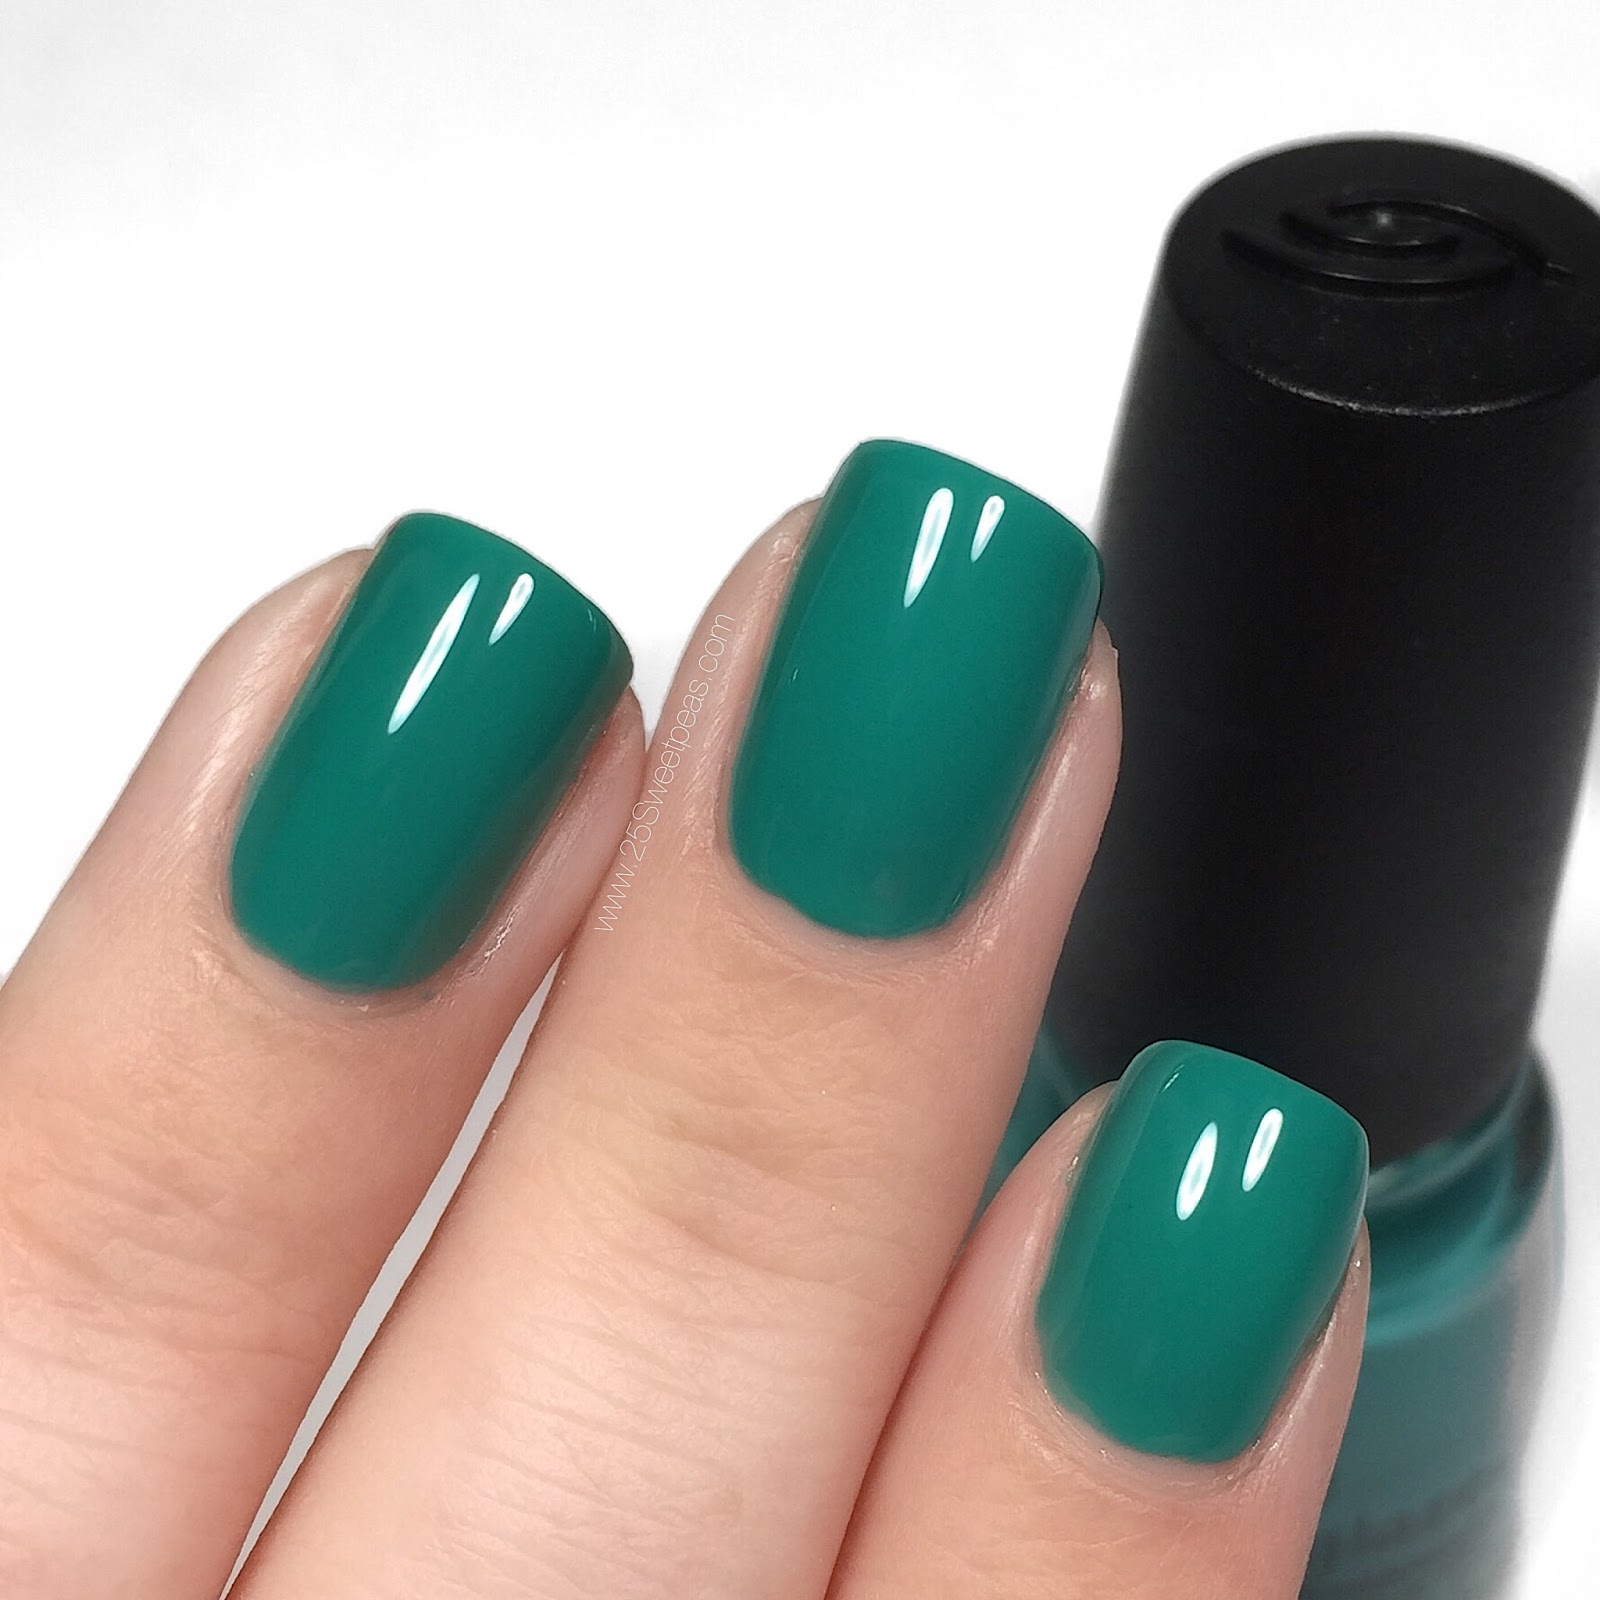 China Glaze Activewear Don't Care